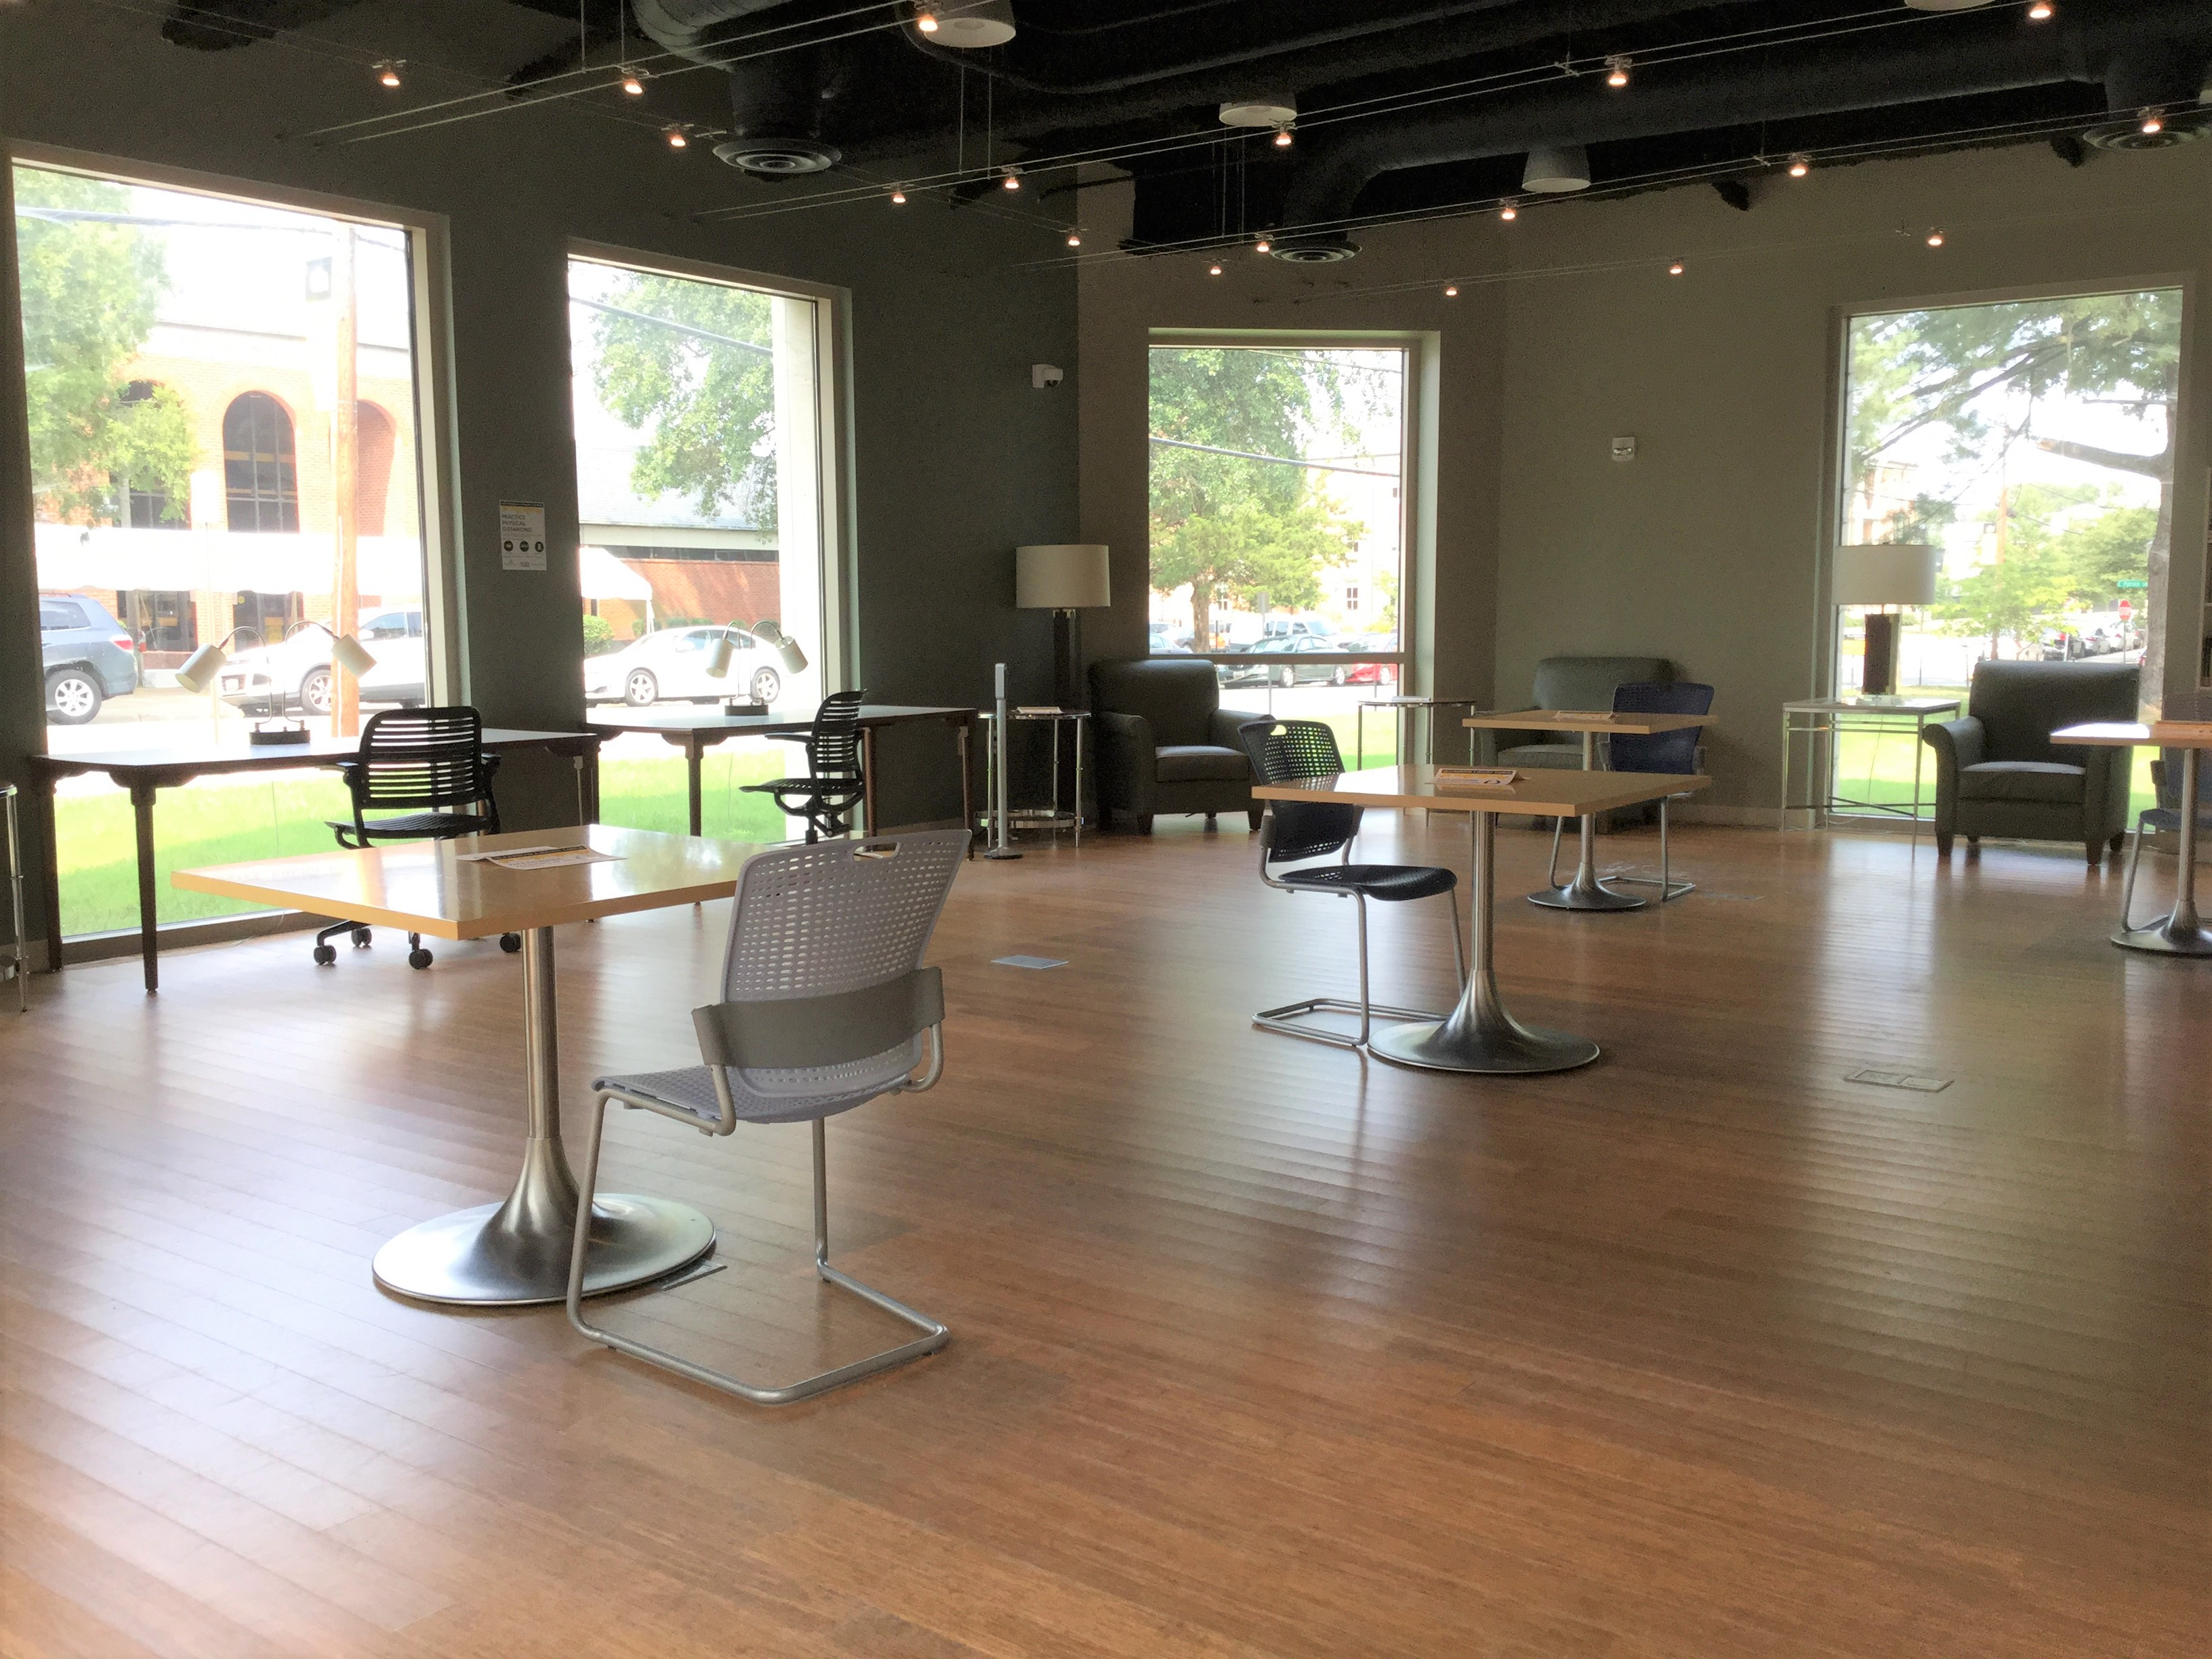 images shows tables and chairs spread out in the abernathy 24/7 study space